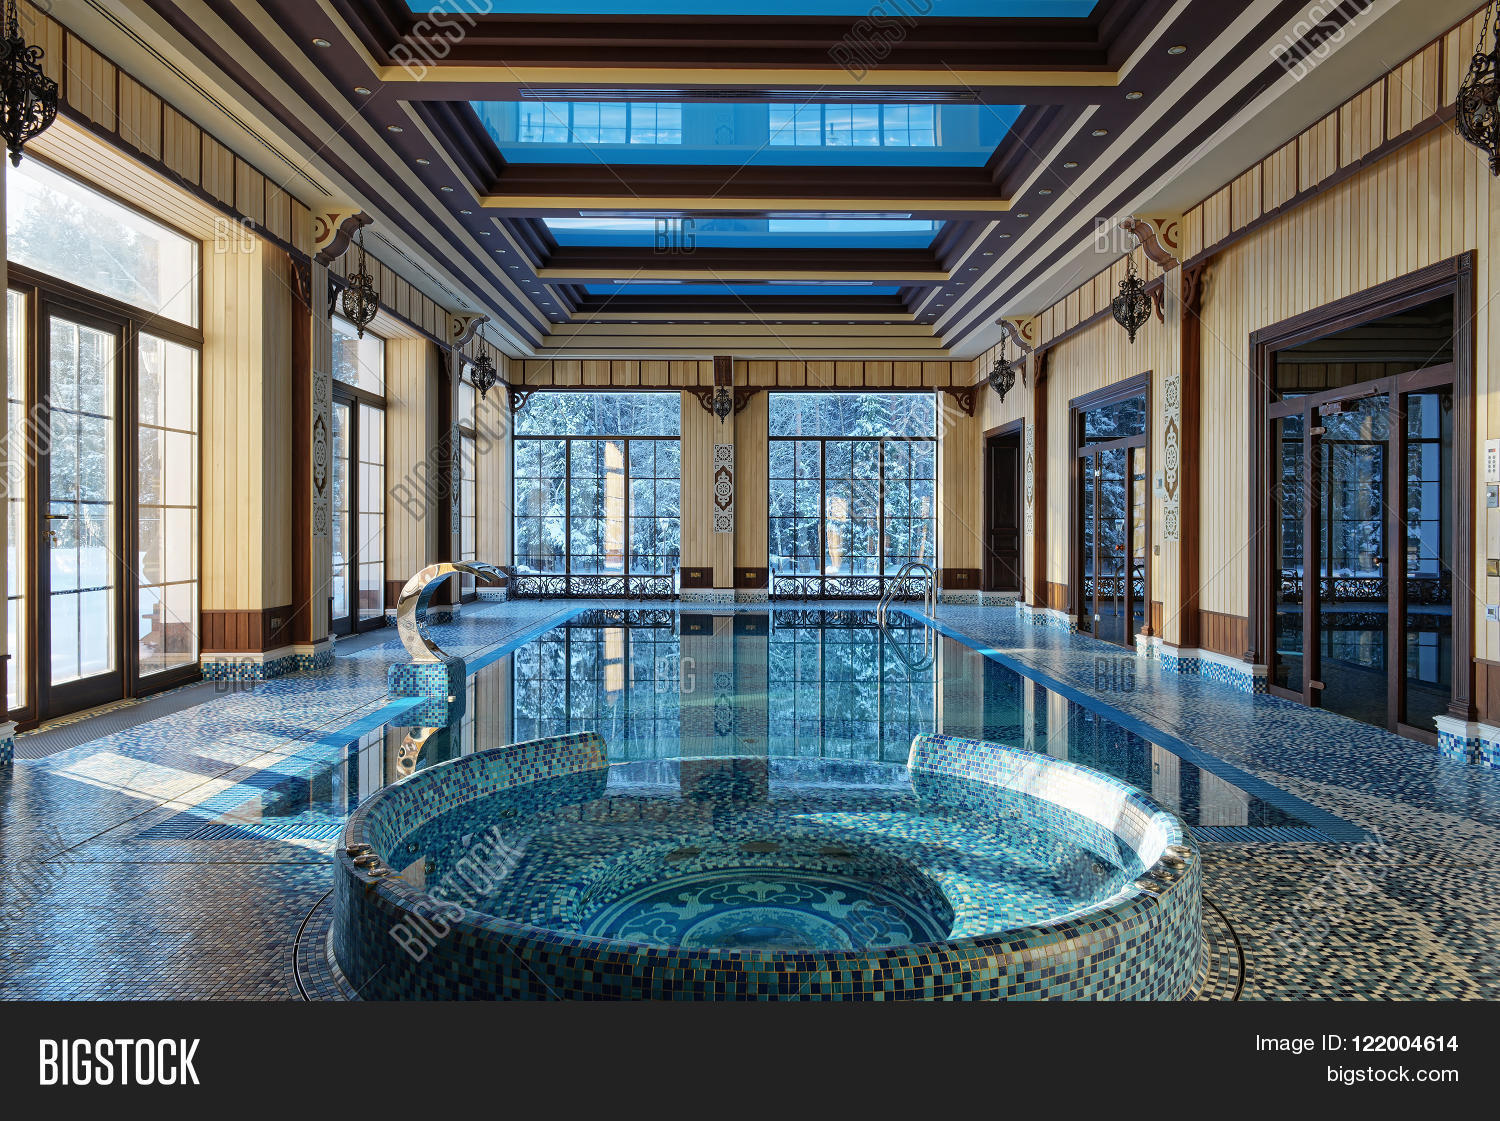 Interior design home indoor pool image photo bigstock for Interior pool house designs